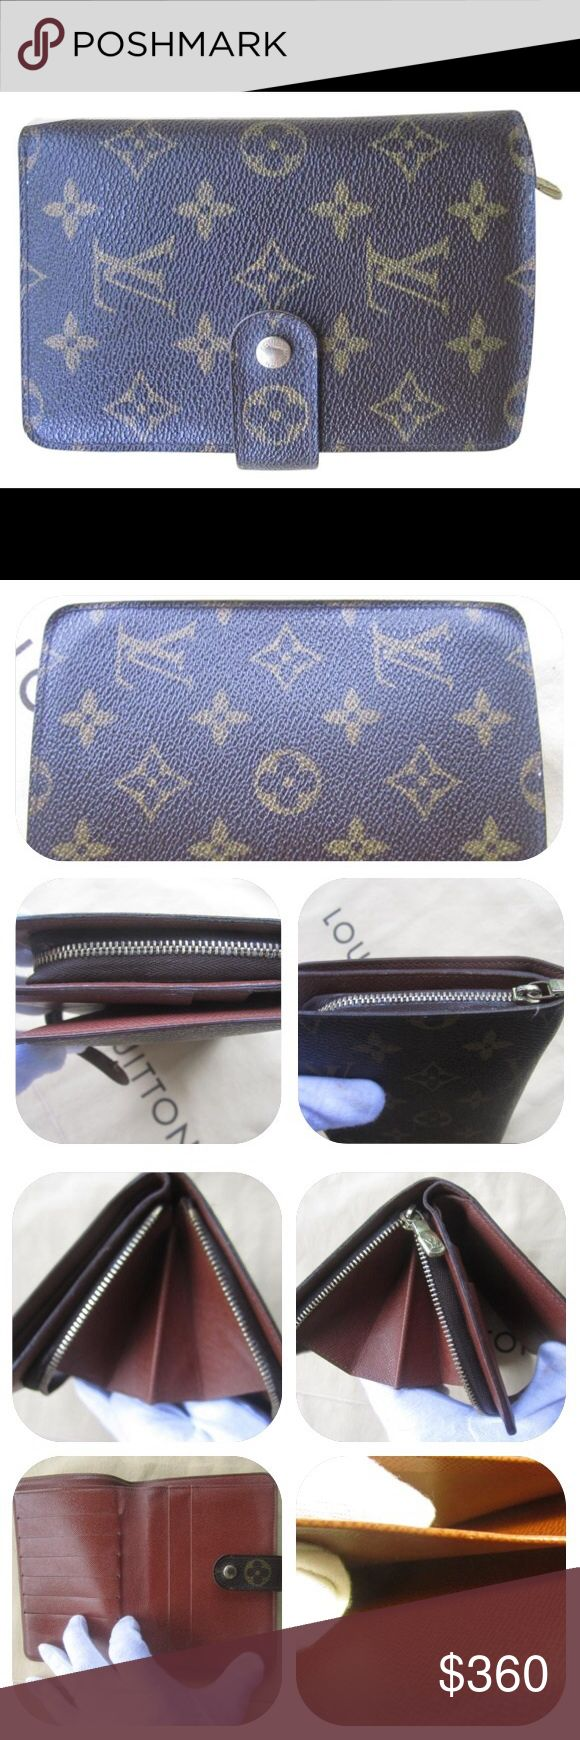 """Authentic Louis Vuitton Porte Papier Wallet Preowned. Good condition. Edges and corners look good. Exterior canvas is in good condition. Interior is nice and clean. Slight peeling in bill compartment from normal use, please see photos. Please view all photos carefully, as they are an essential part of the description. Date code: SP0070. Dimensions: 6.1"""" length, 1"""" depth, 4.3"""" height. Snap closure, zipper coin pouch, large bill pocket, 2 slip pockets, 5 card slots. Lots of room inside, very…"""